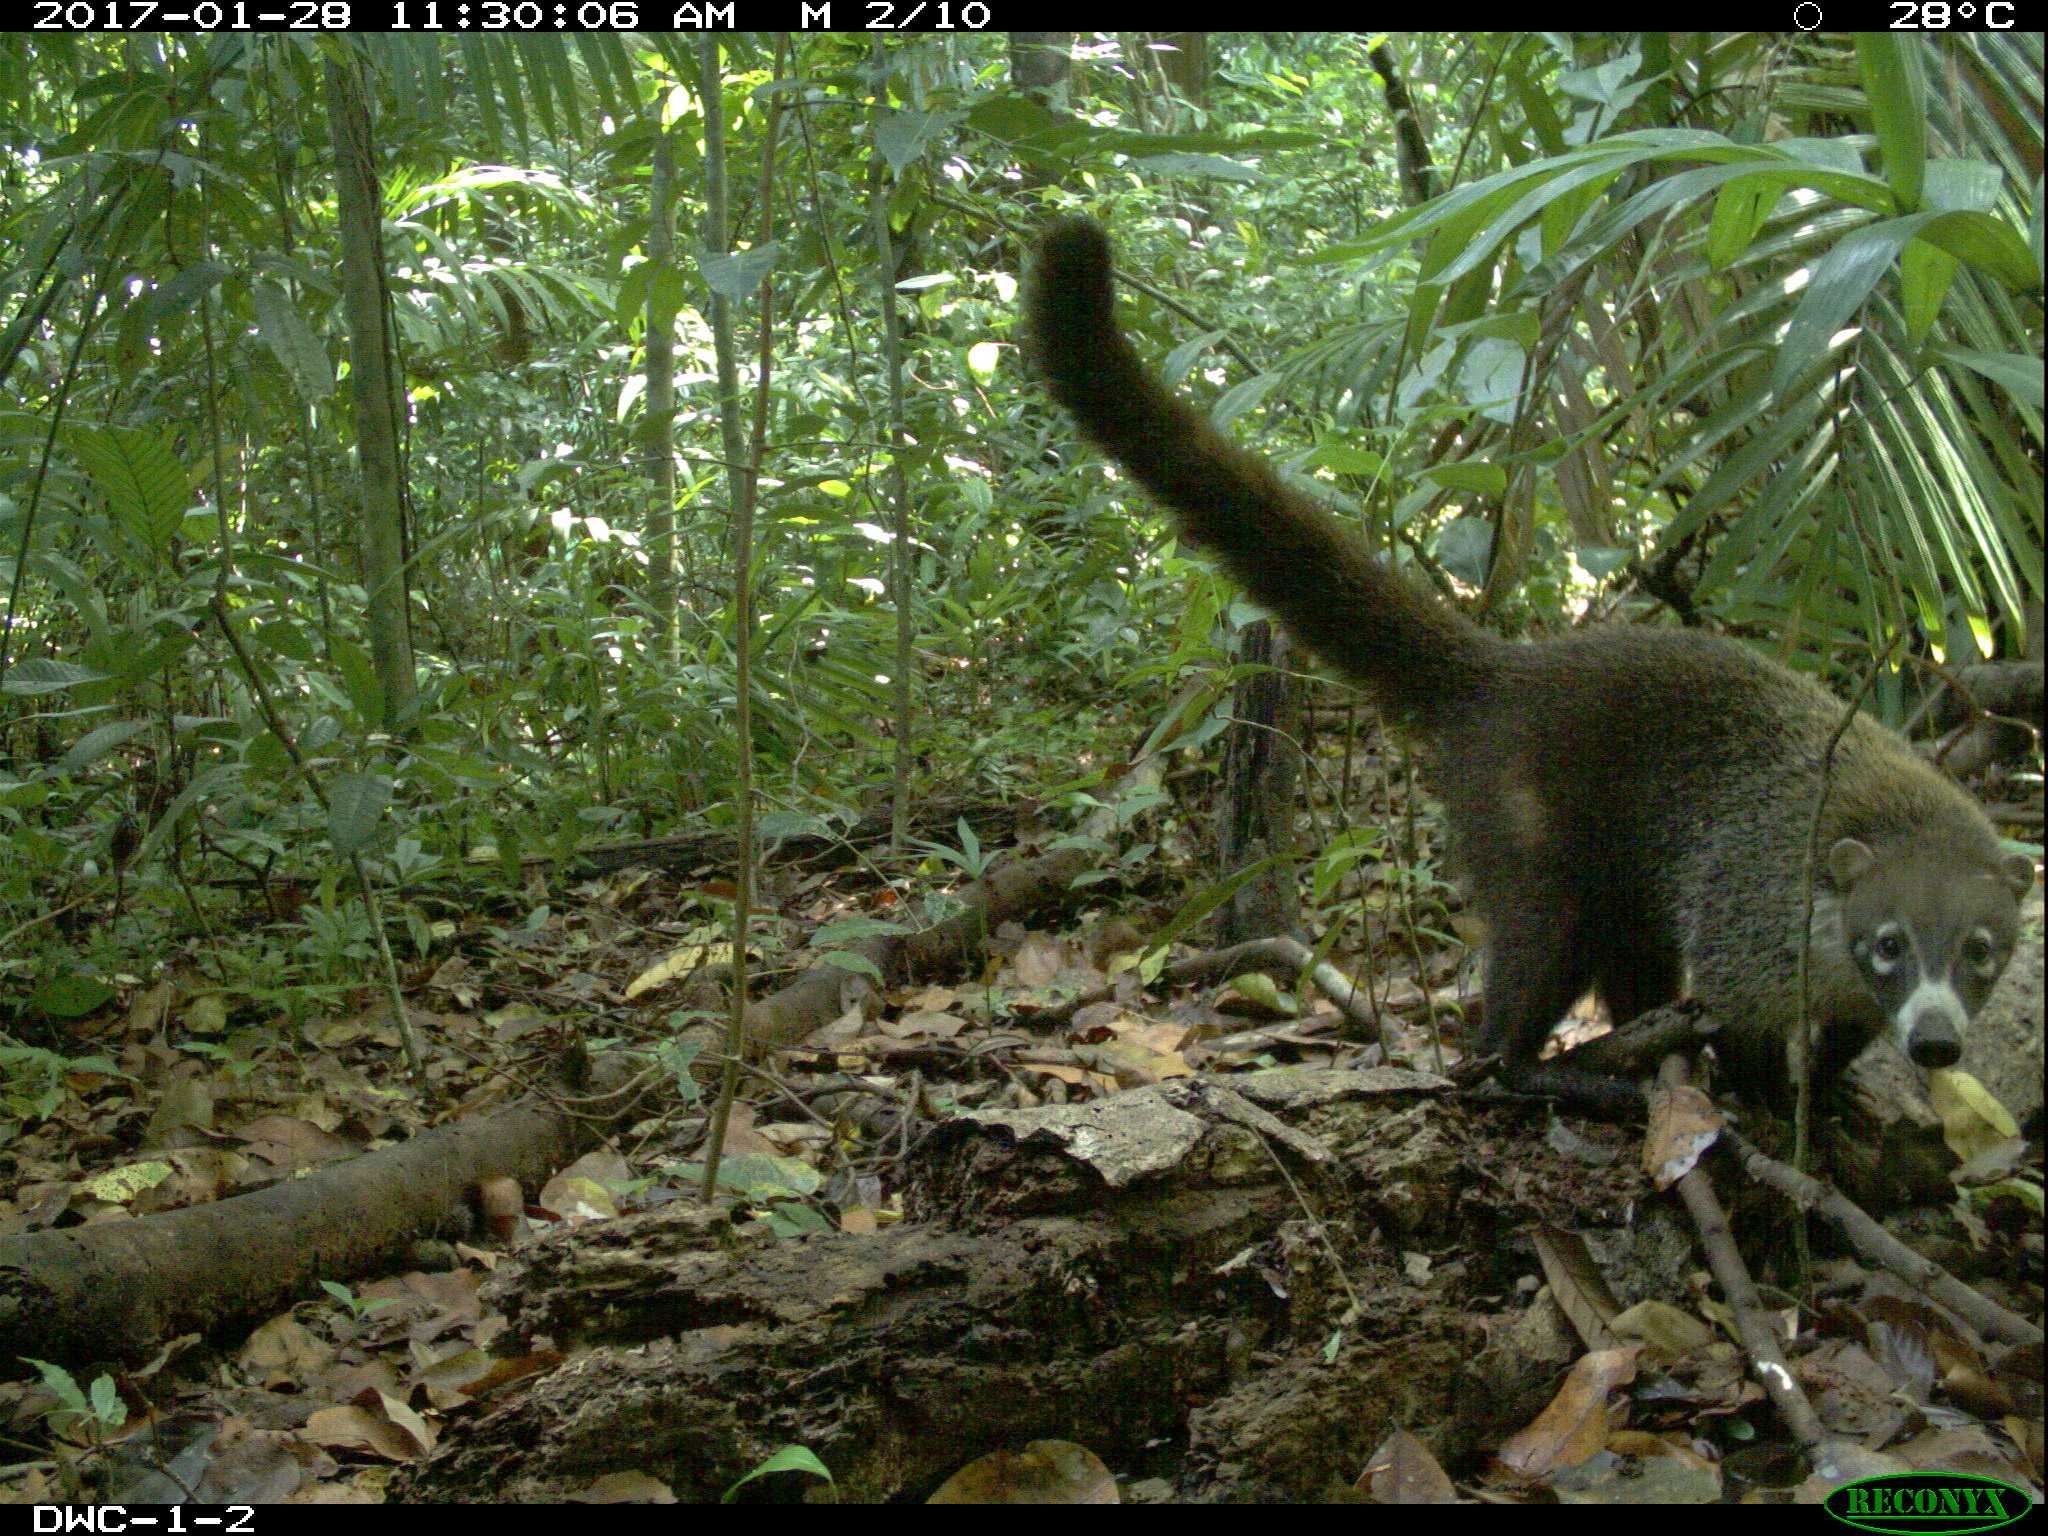 coati, DWC-1-2. cute looking.jpg